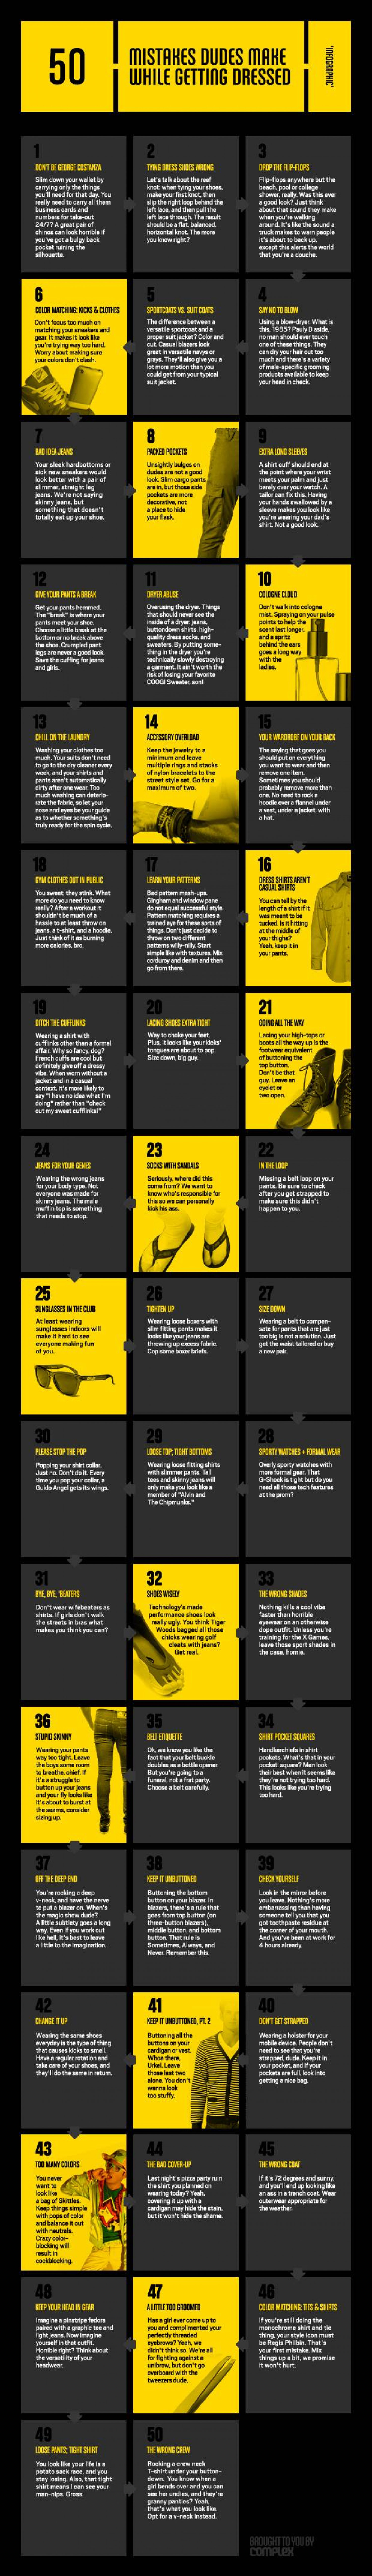 50 Mistakes Dudes Make While Getting Dressed Infographic  Infographic